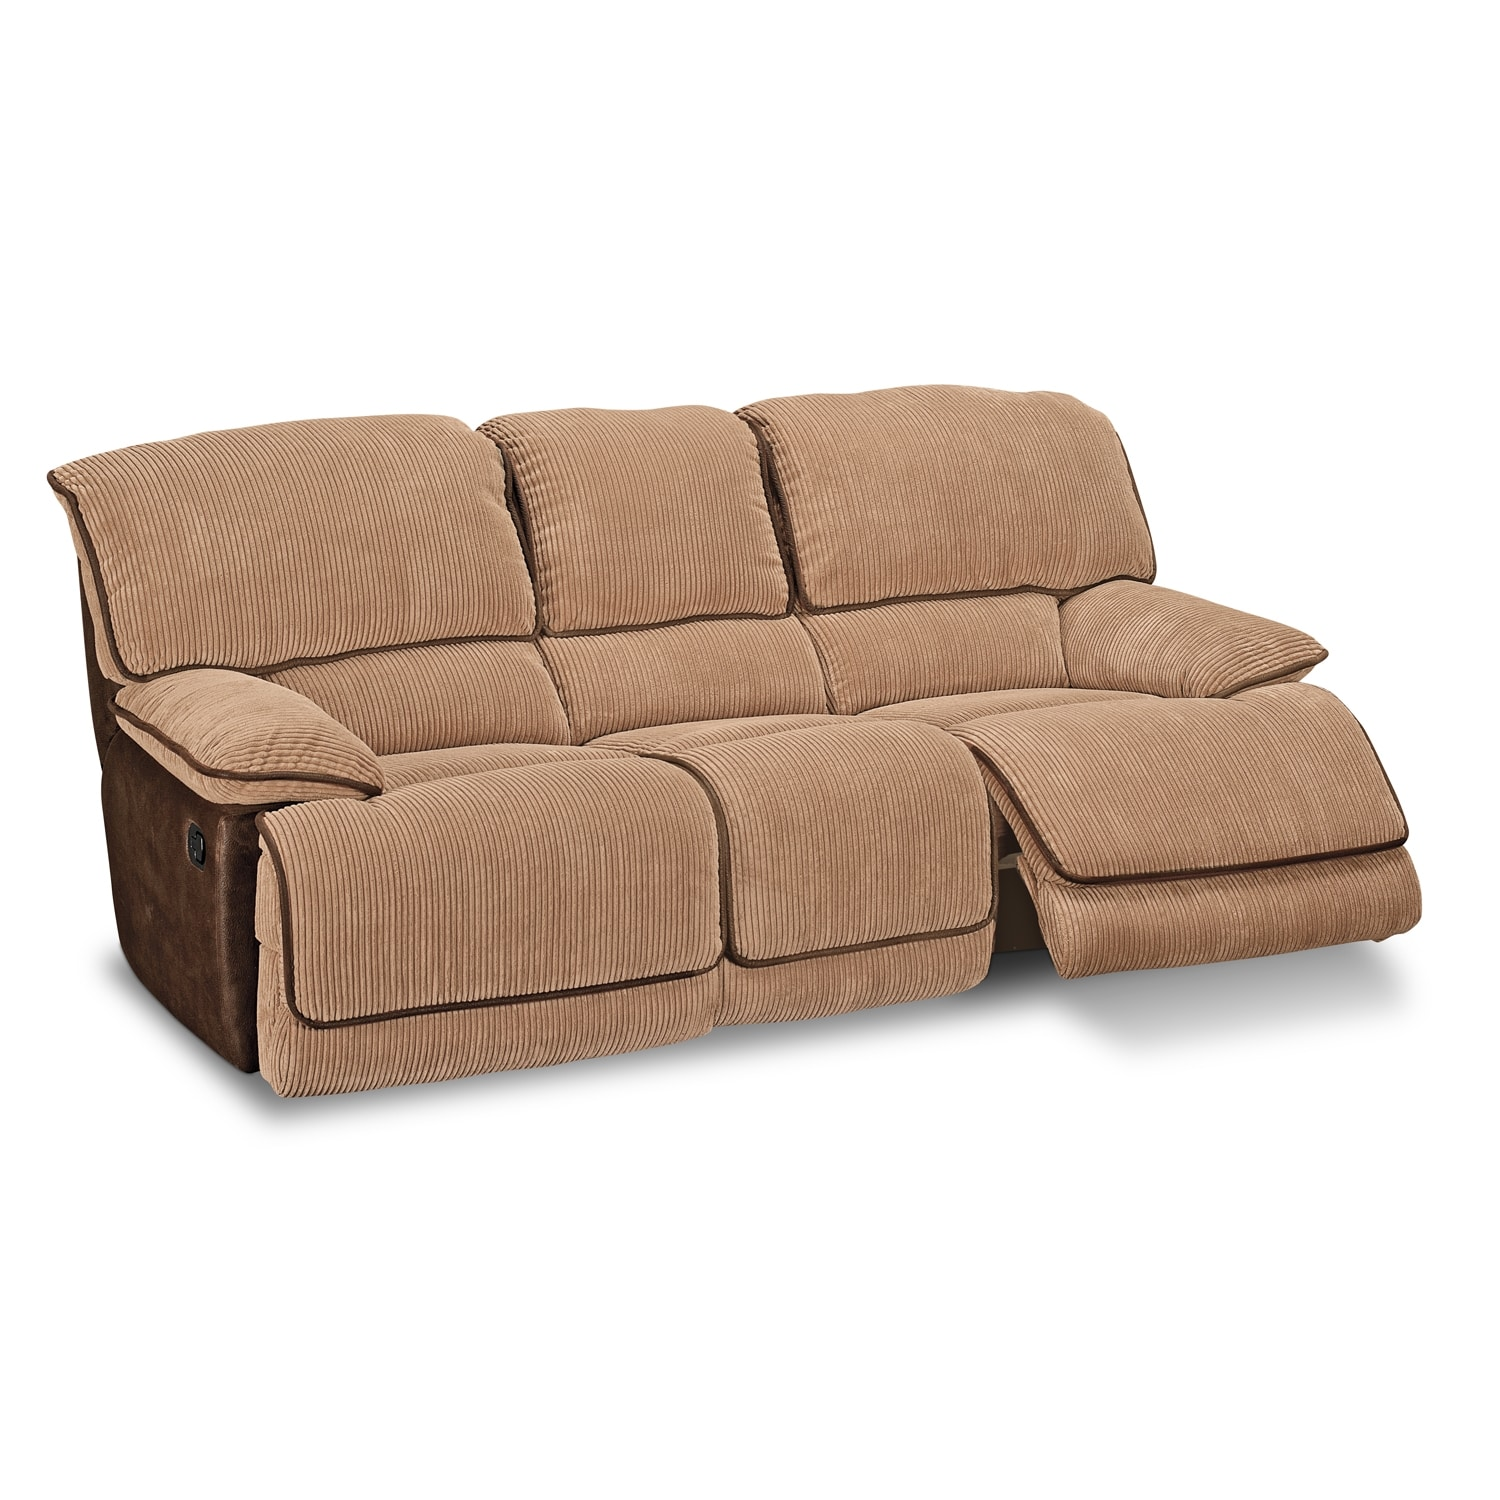 Laguna dual reclining sofa camel american signature for Divan furniture